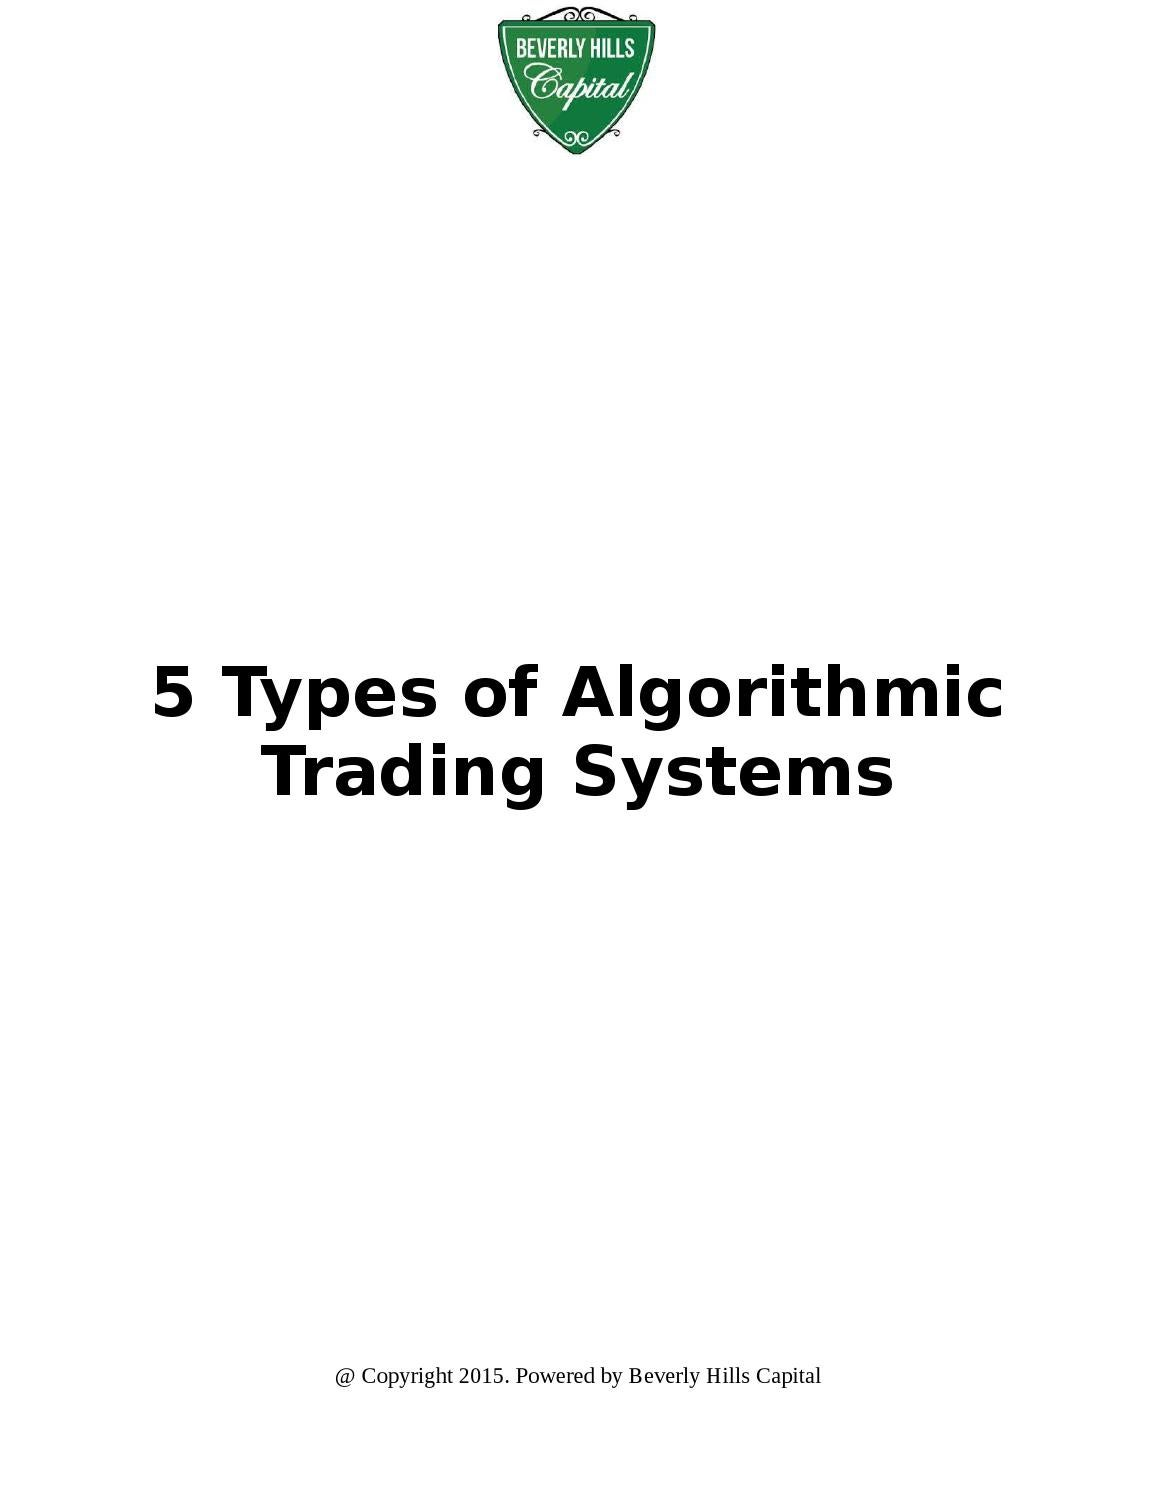 Algorithmic options trading software